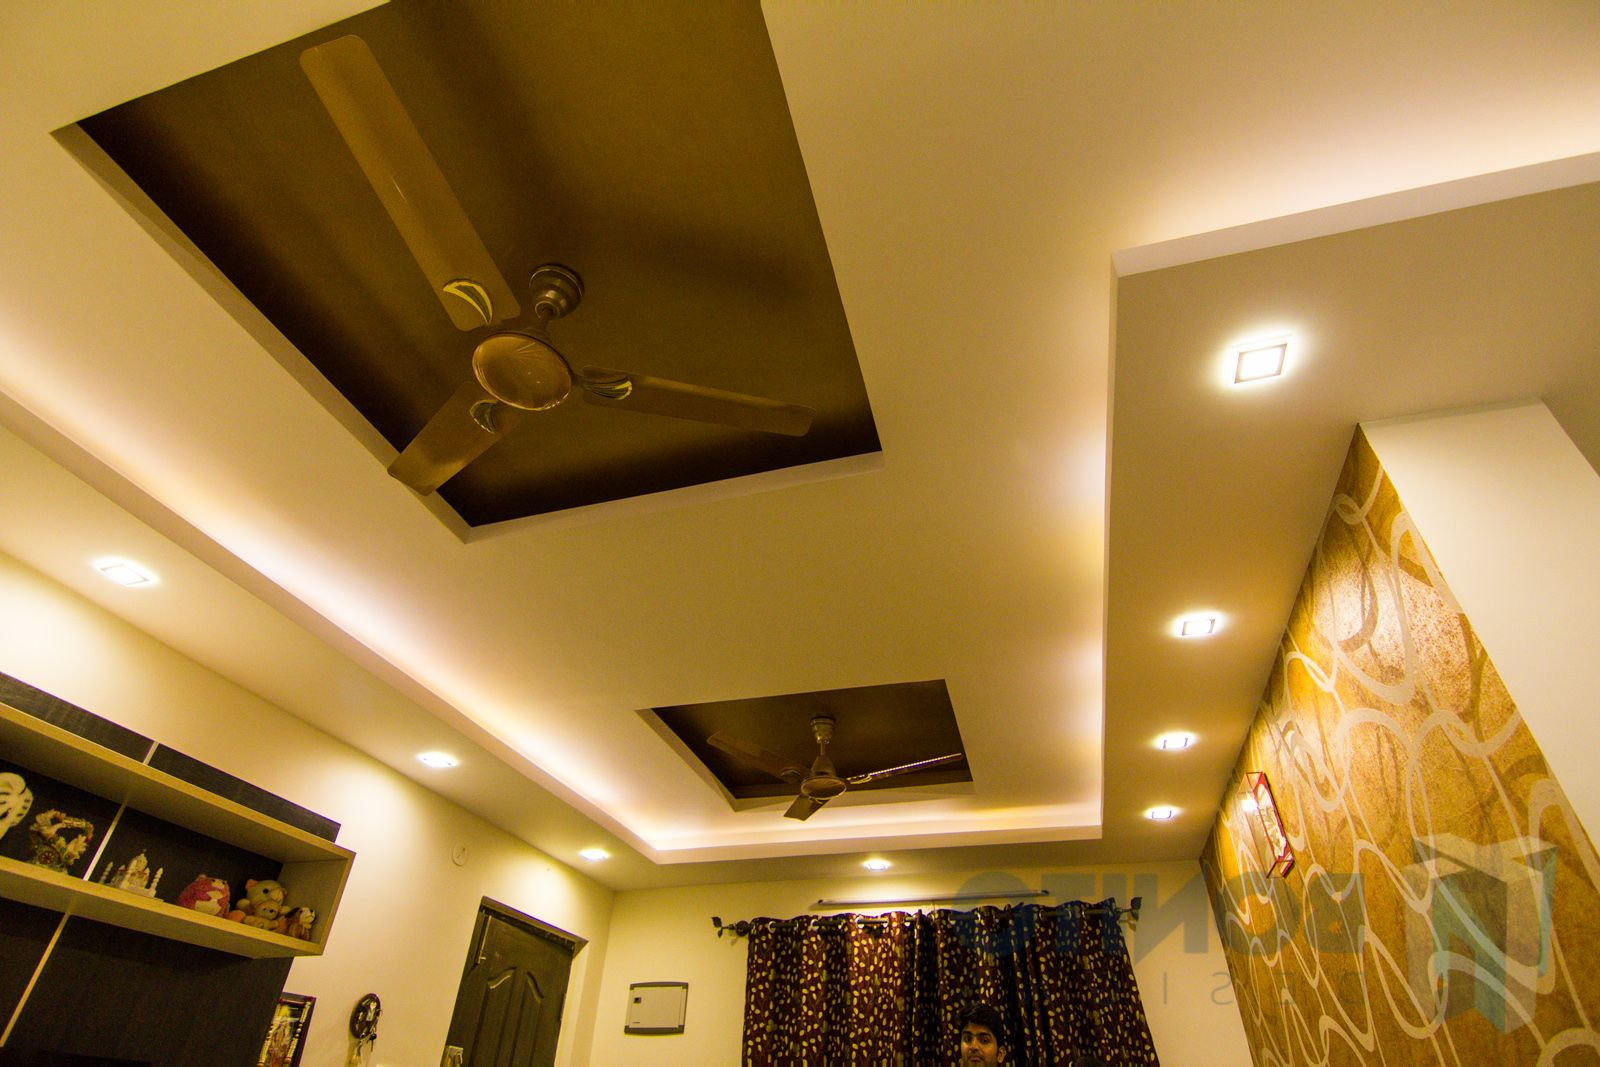 Pop Ceiling Design For Hall With 2 Fans - New Blog ...